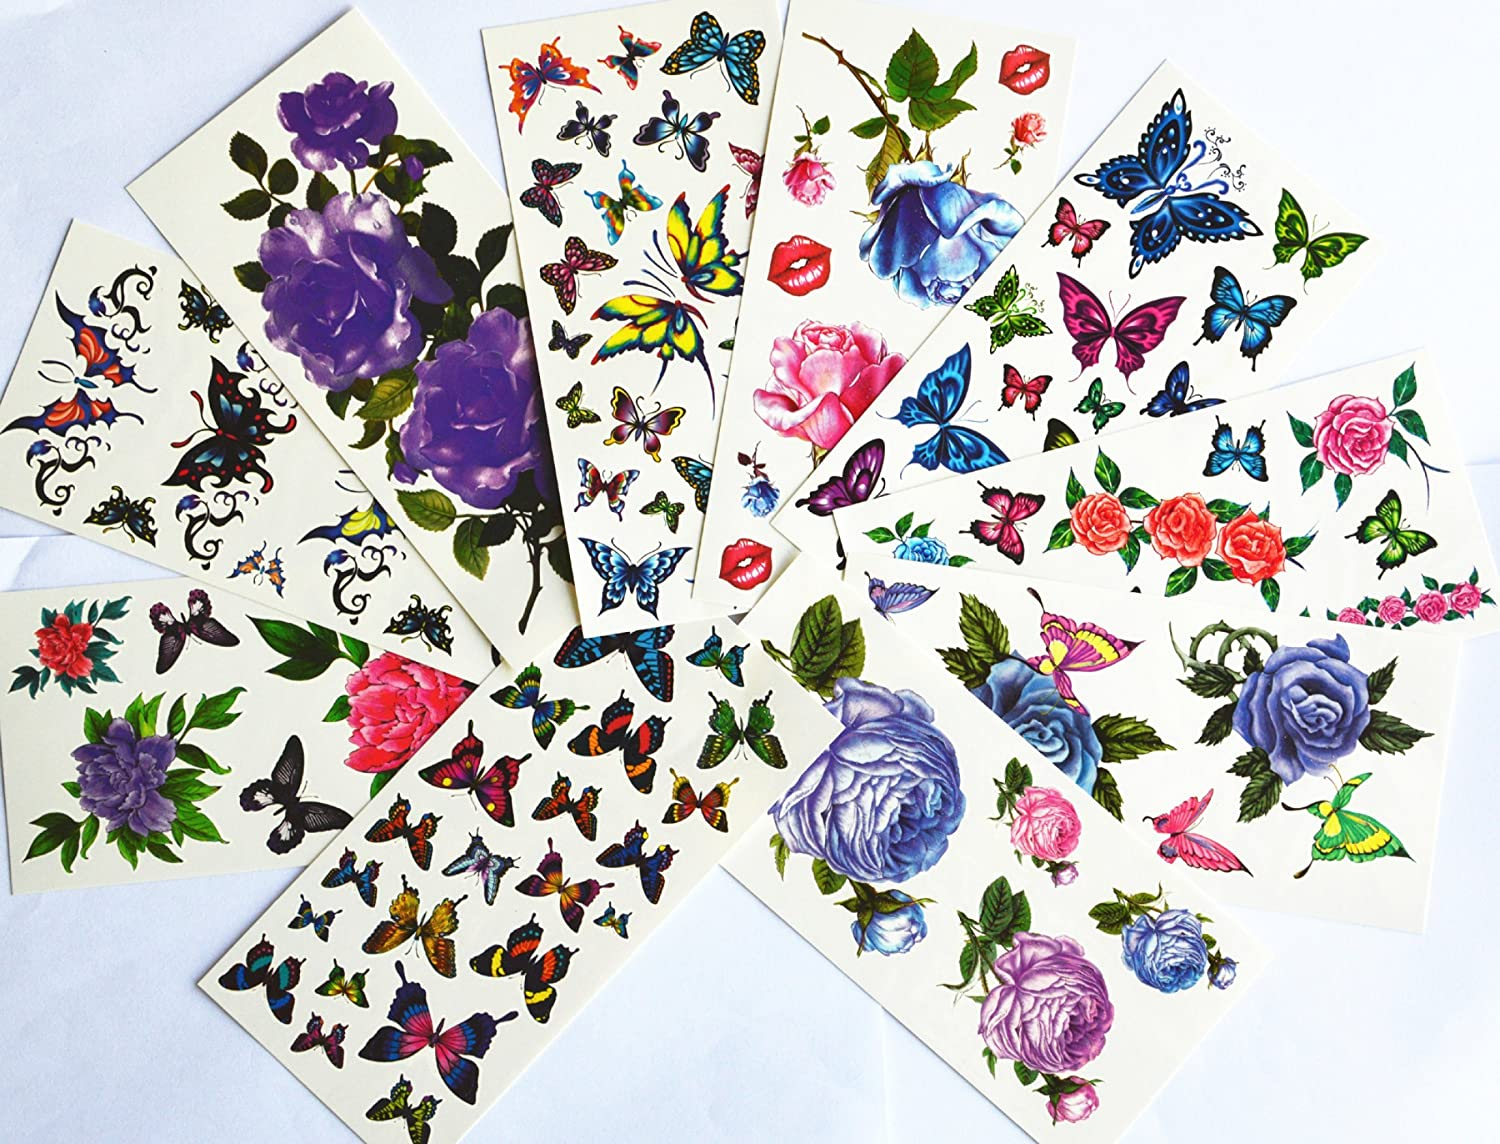 10pcs/package hot selling temporary tattoo stickers various designs including purple peony/blue and red roses/colorful flowers and butterflies/red lips/etc. supplier